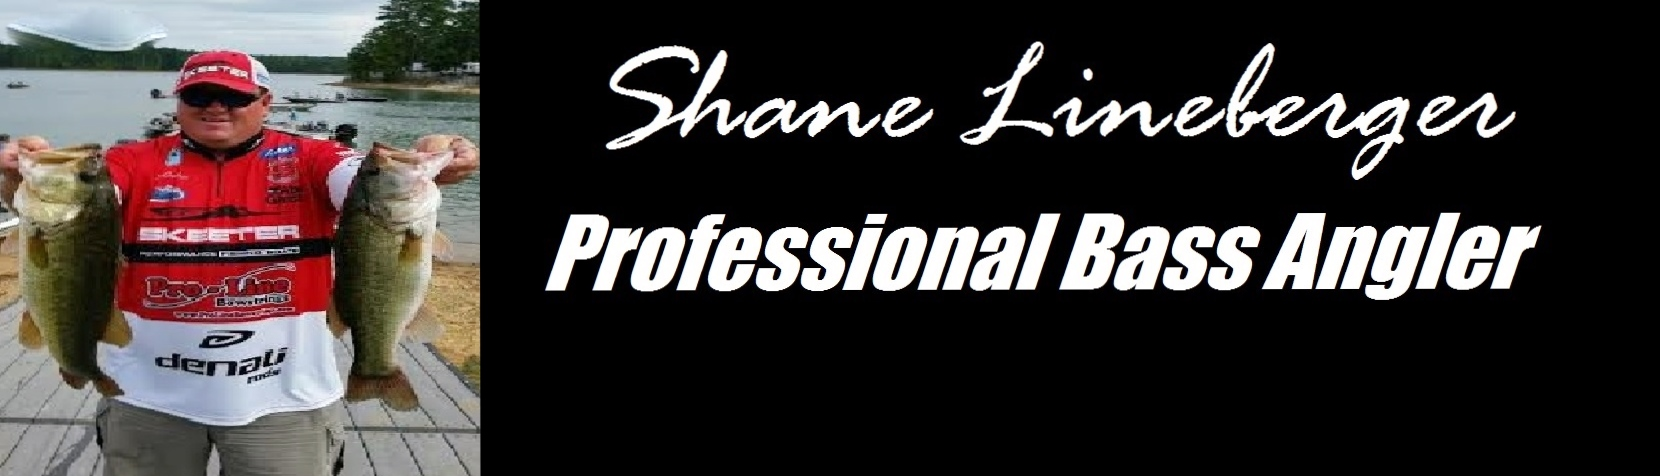 Shane Lineberger – Professional Bass Angler